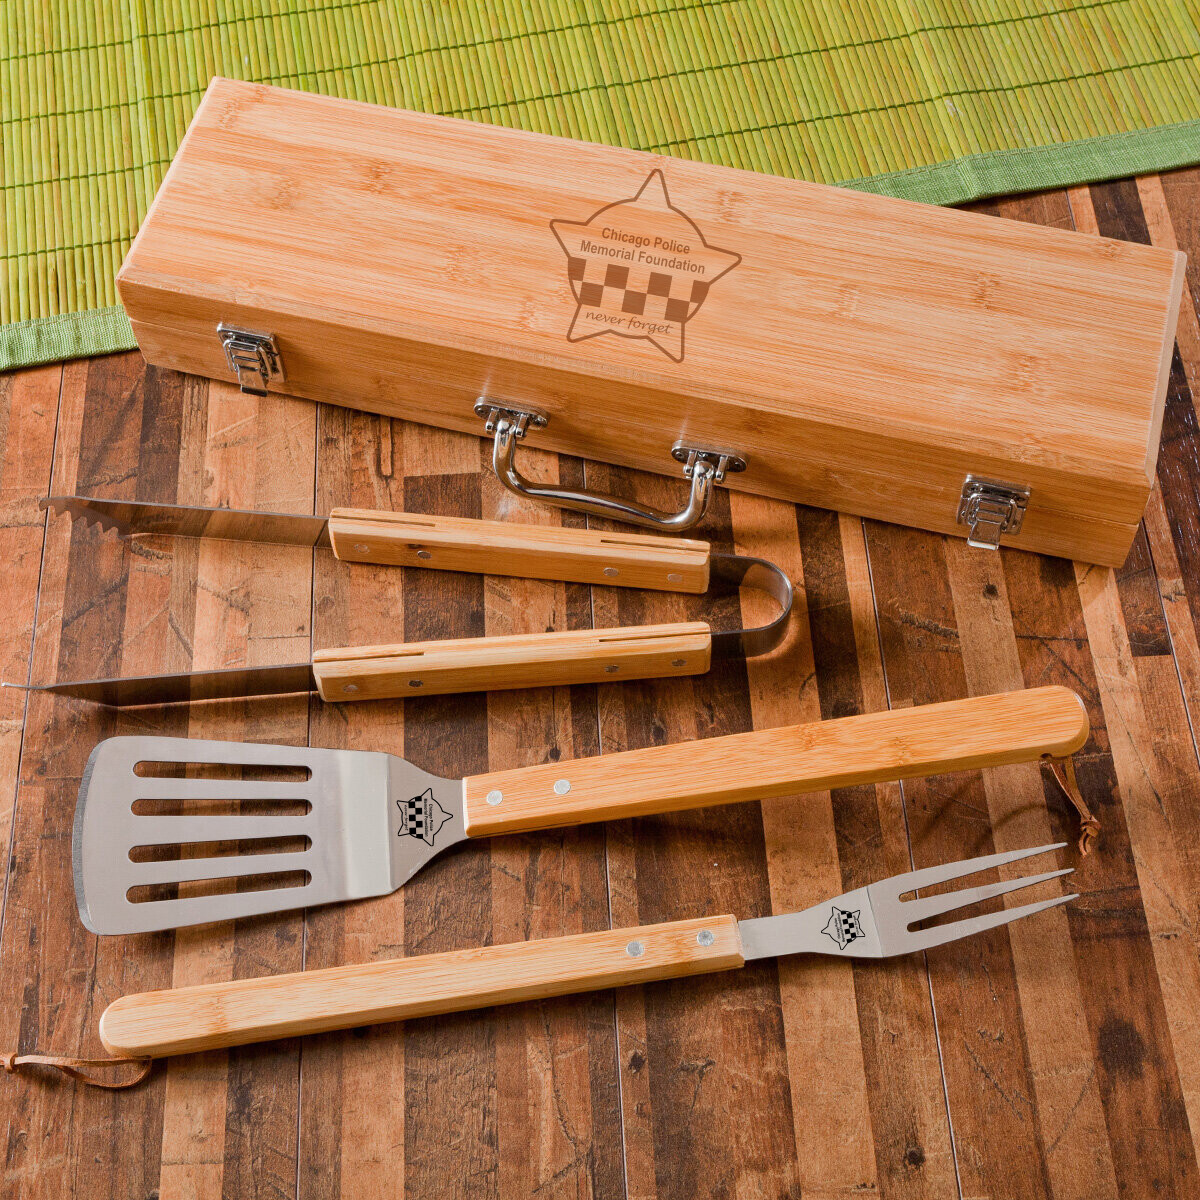 CPD Memorial 3-Piece Bamboo BBQ Set in Bamboo Case